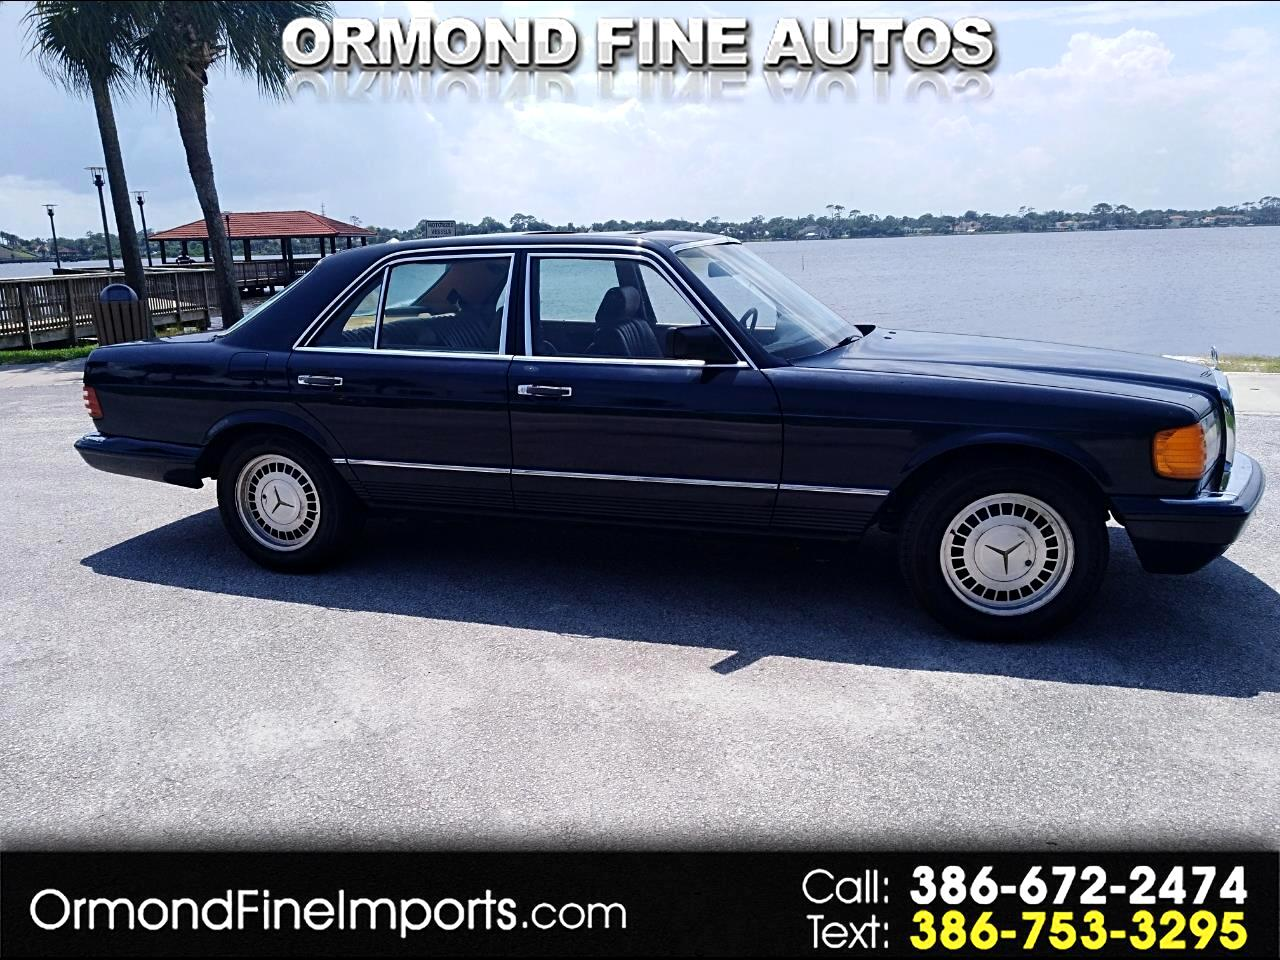 1982 Mercedes-Benz 380 Series 4dr Sedan 380SEL